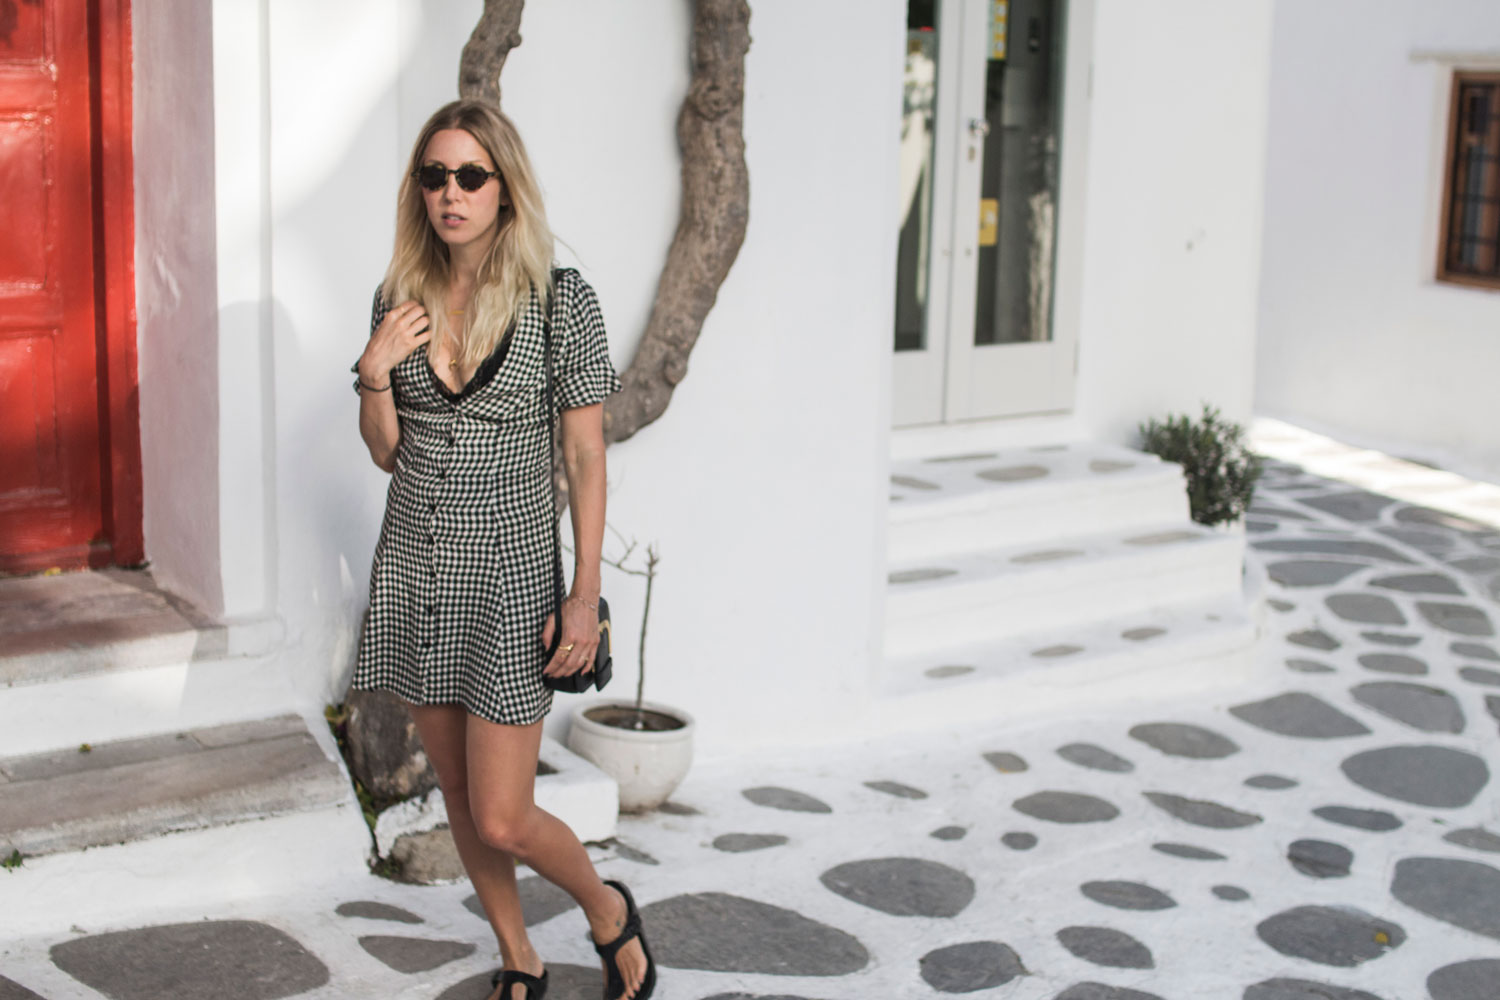 Gingham, Mykonos, Birkenstock, Reformation, Dress, Bra, Komono, Sandals, vegan, ootd, Lotd, Look, Style, Stella McCartney, Summer 2017, Inspiration, Blog, stryleTZ